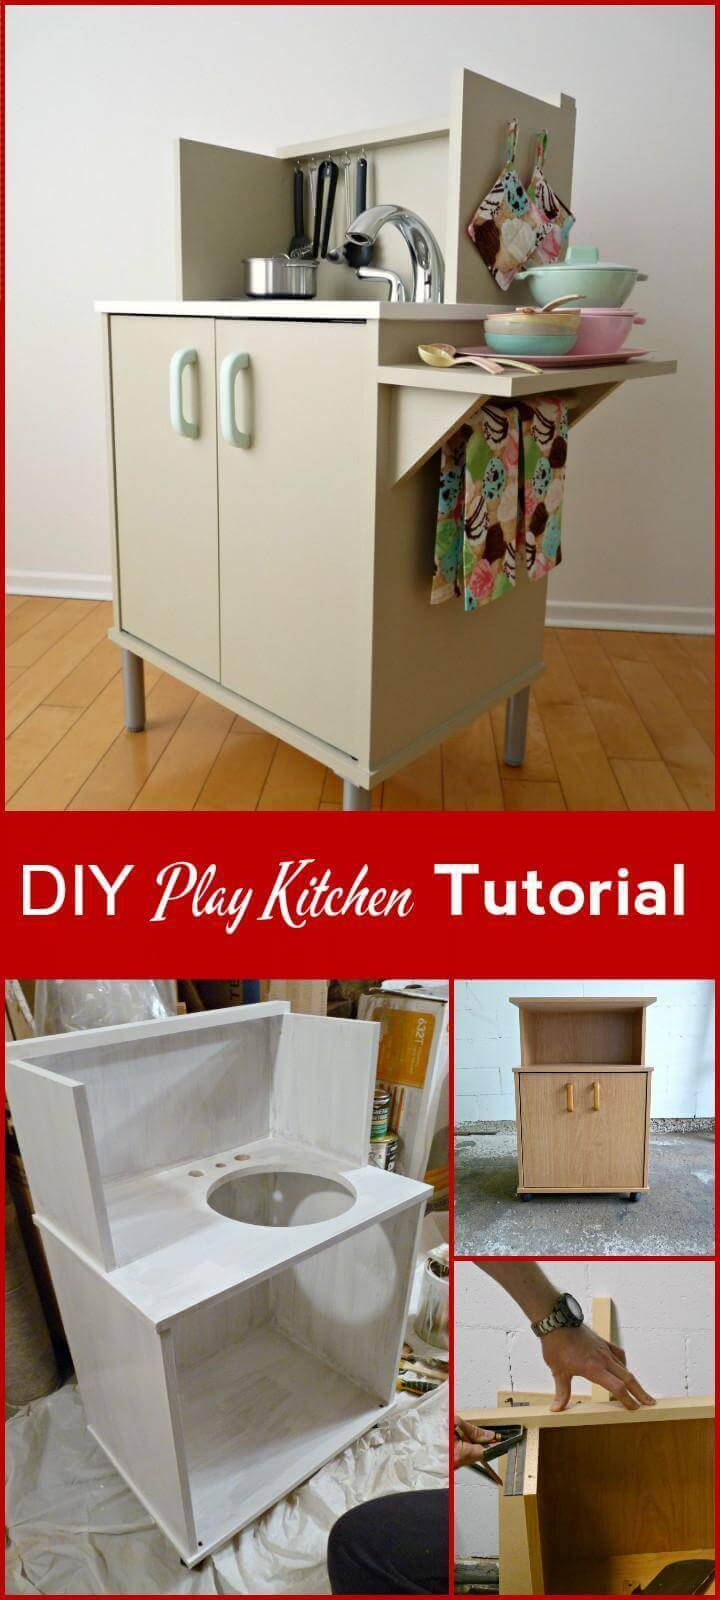 easy DIY play kitchen tutorial